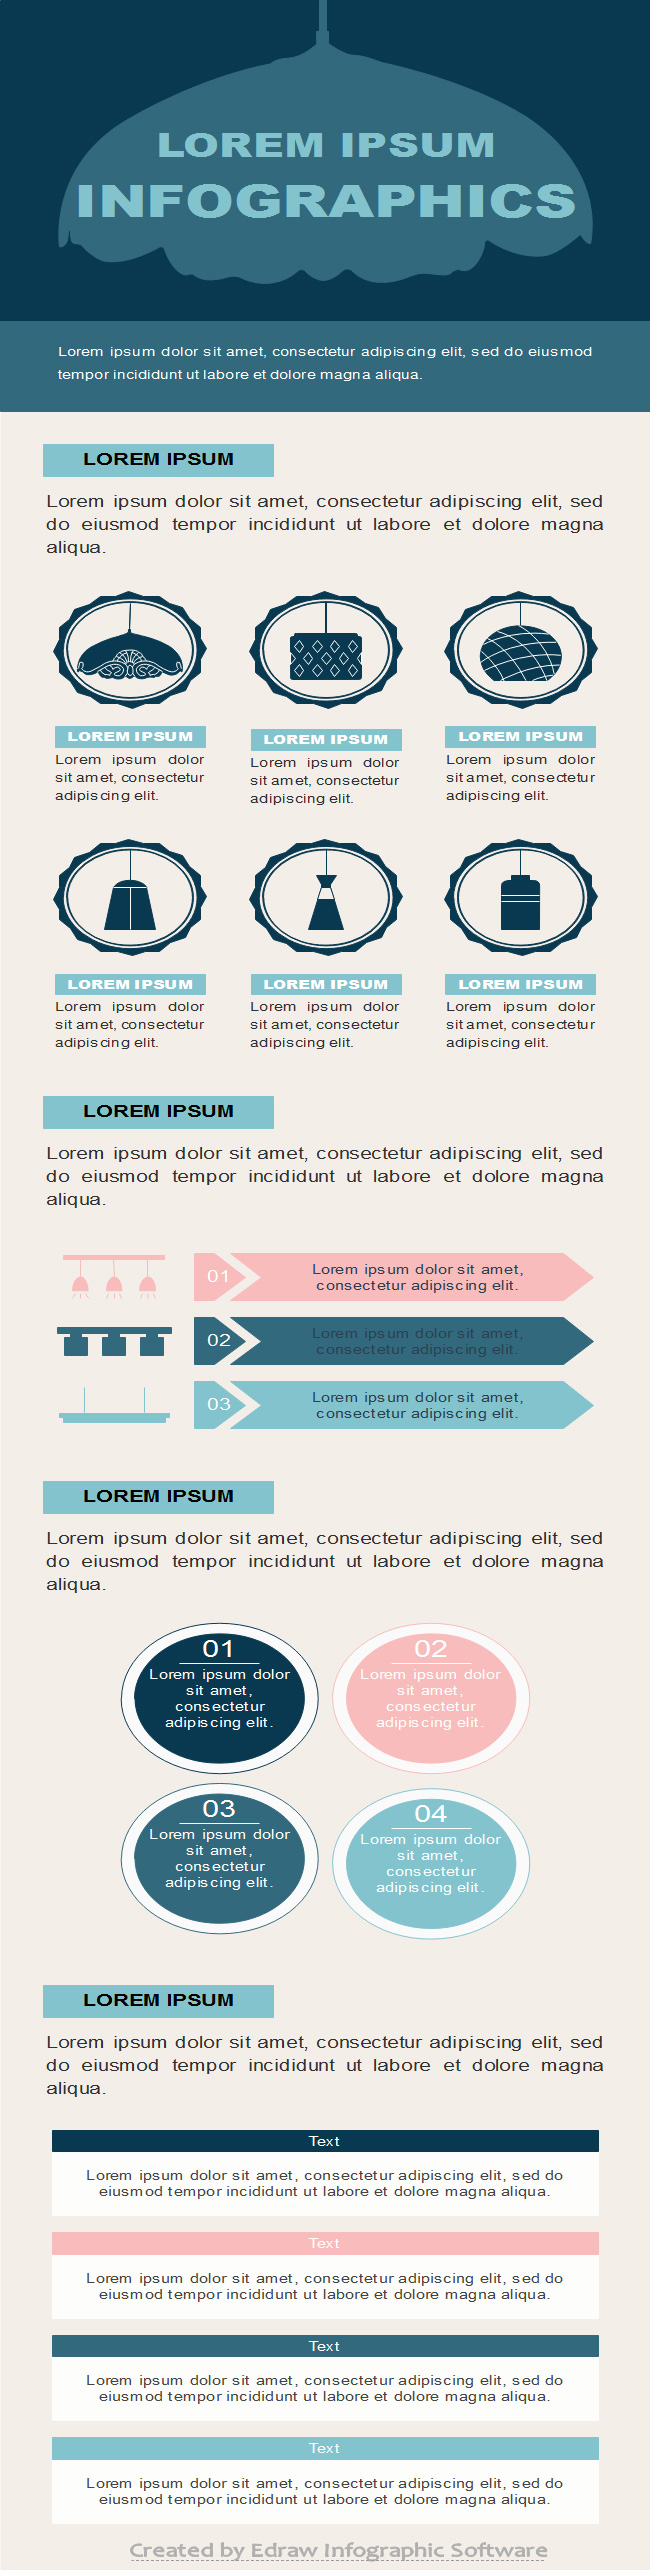 home-light-infographic